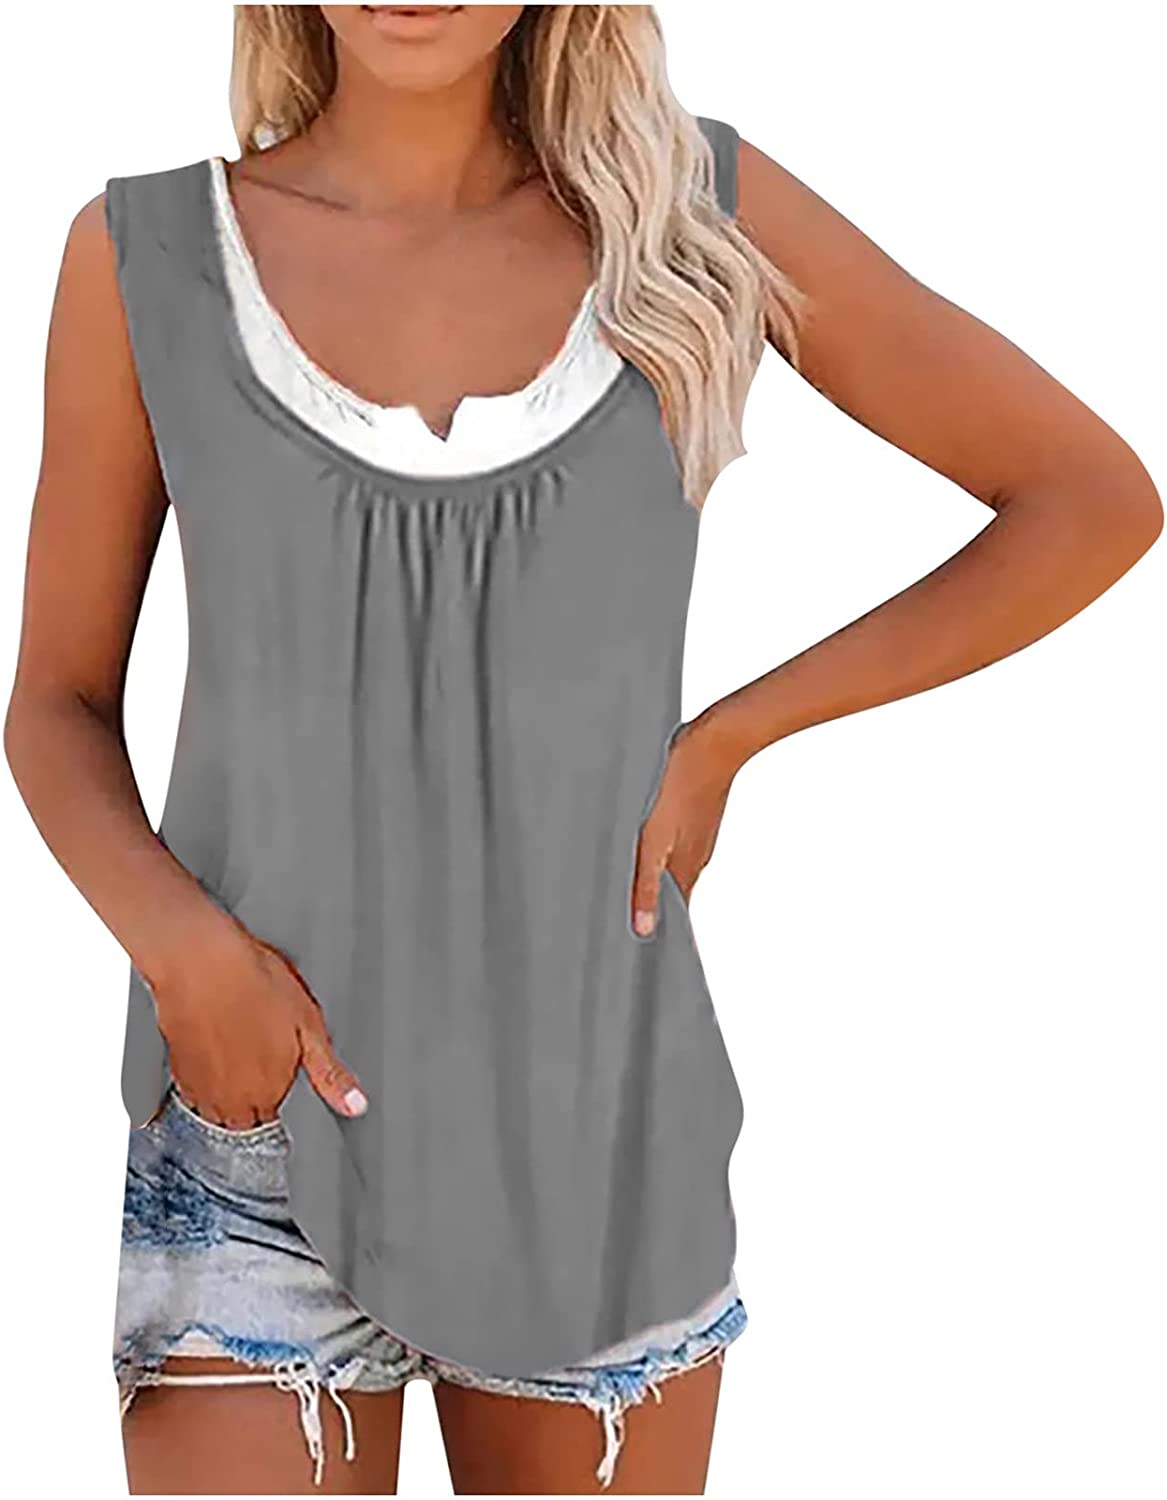 Womens Summer Tops 's Blouse New Casual Loose Color Splicing Classic Vest Tops